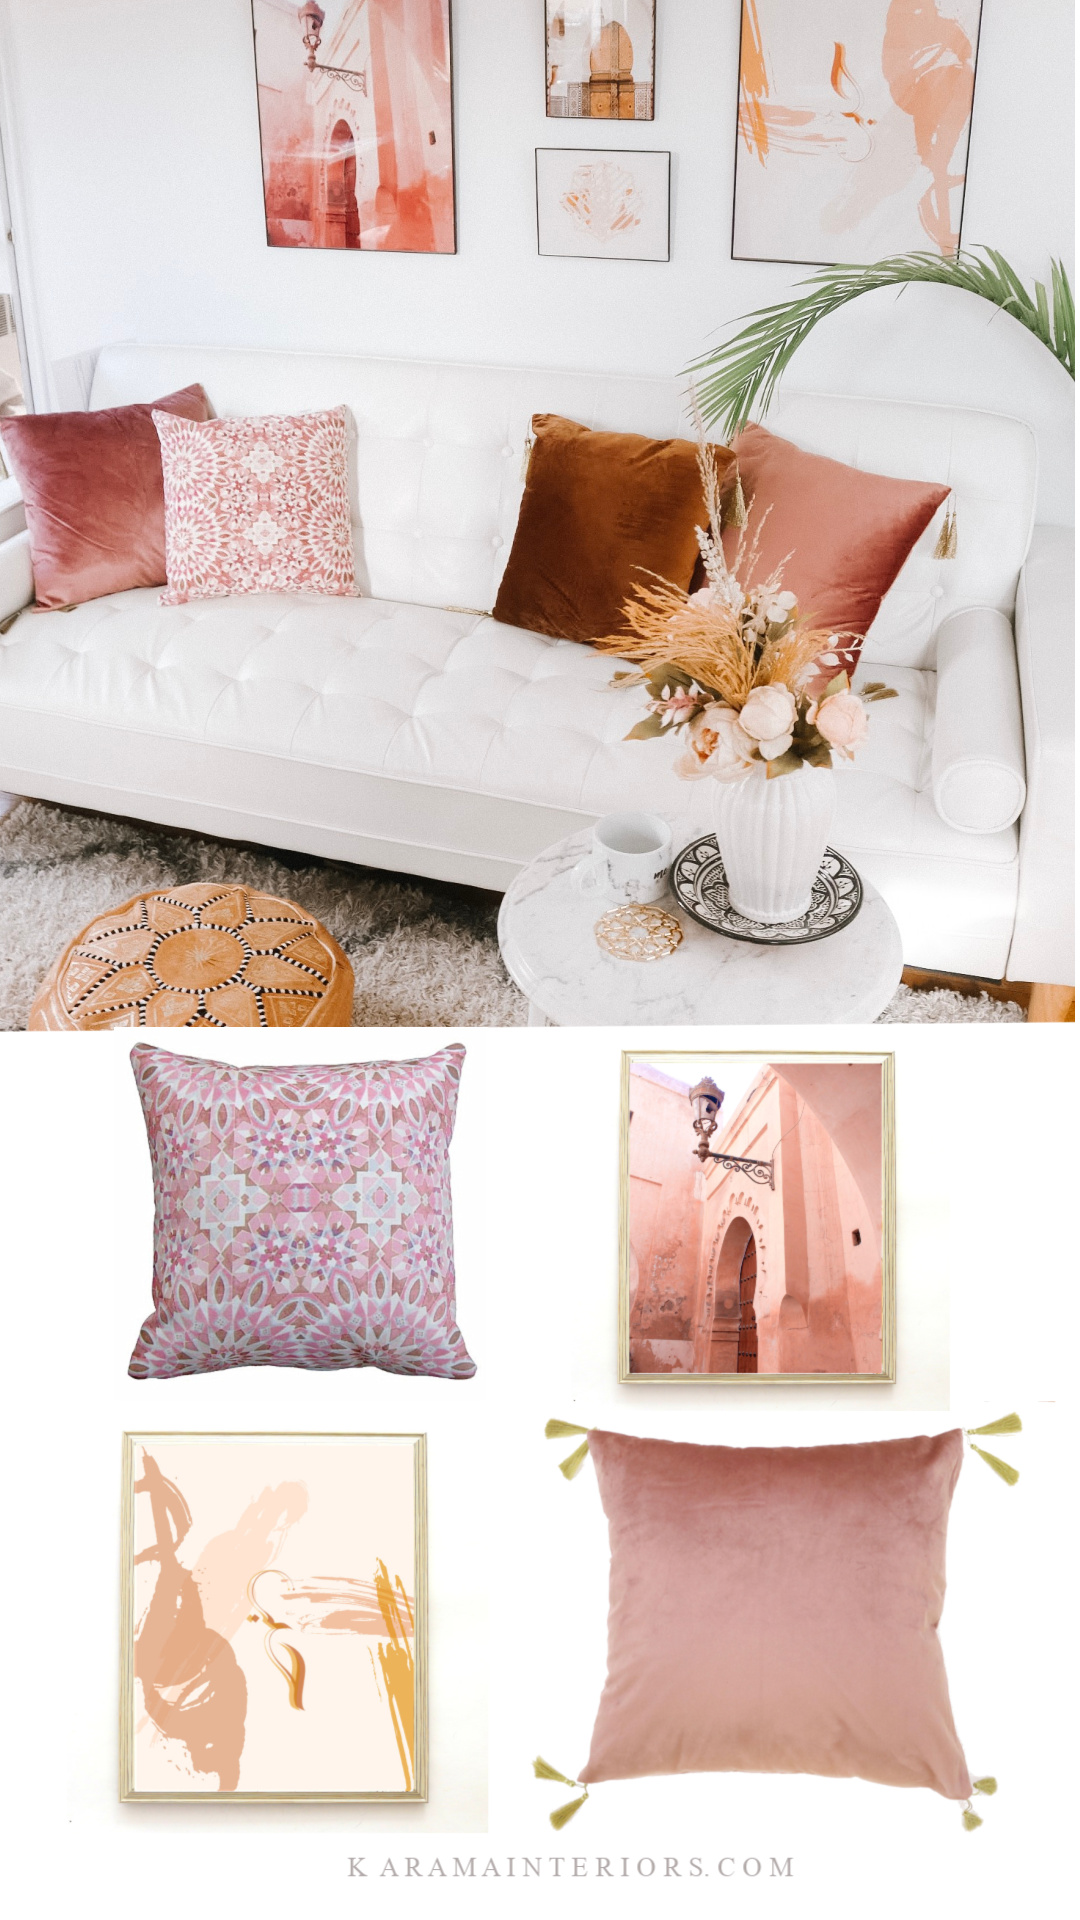 Home Styling Therapy Decor-Boho Moroccan Decor- Karama Interiors Karama Company.jpg